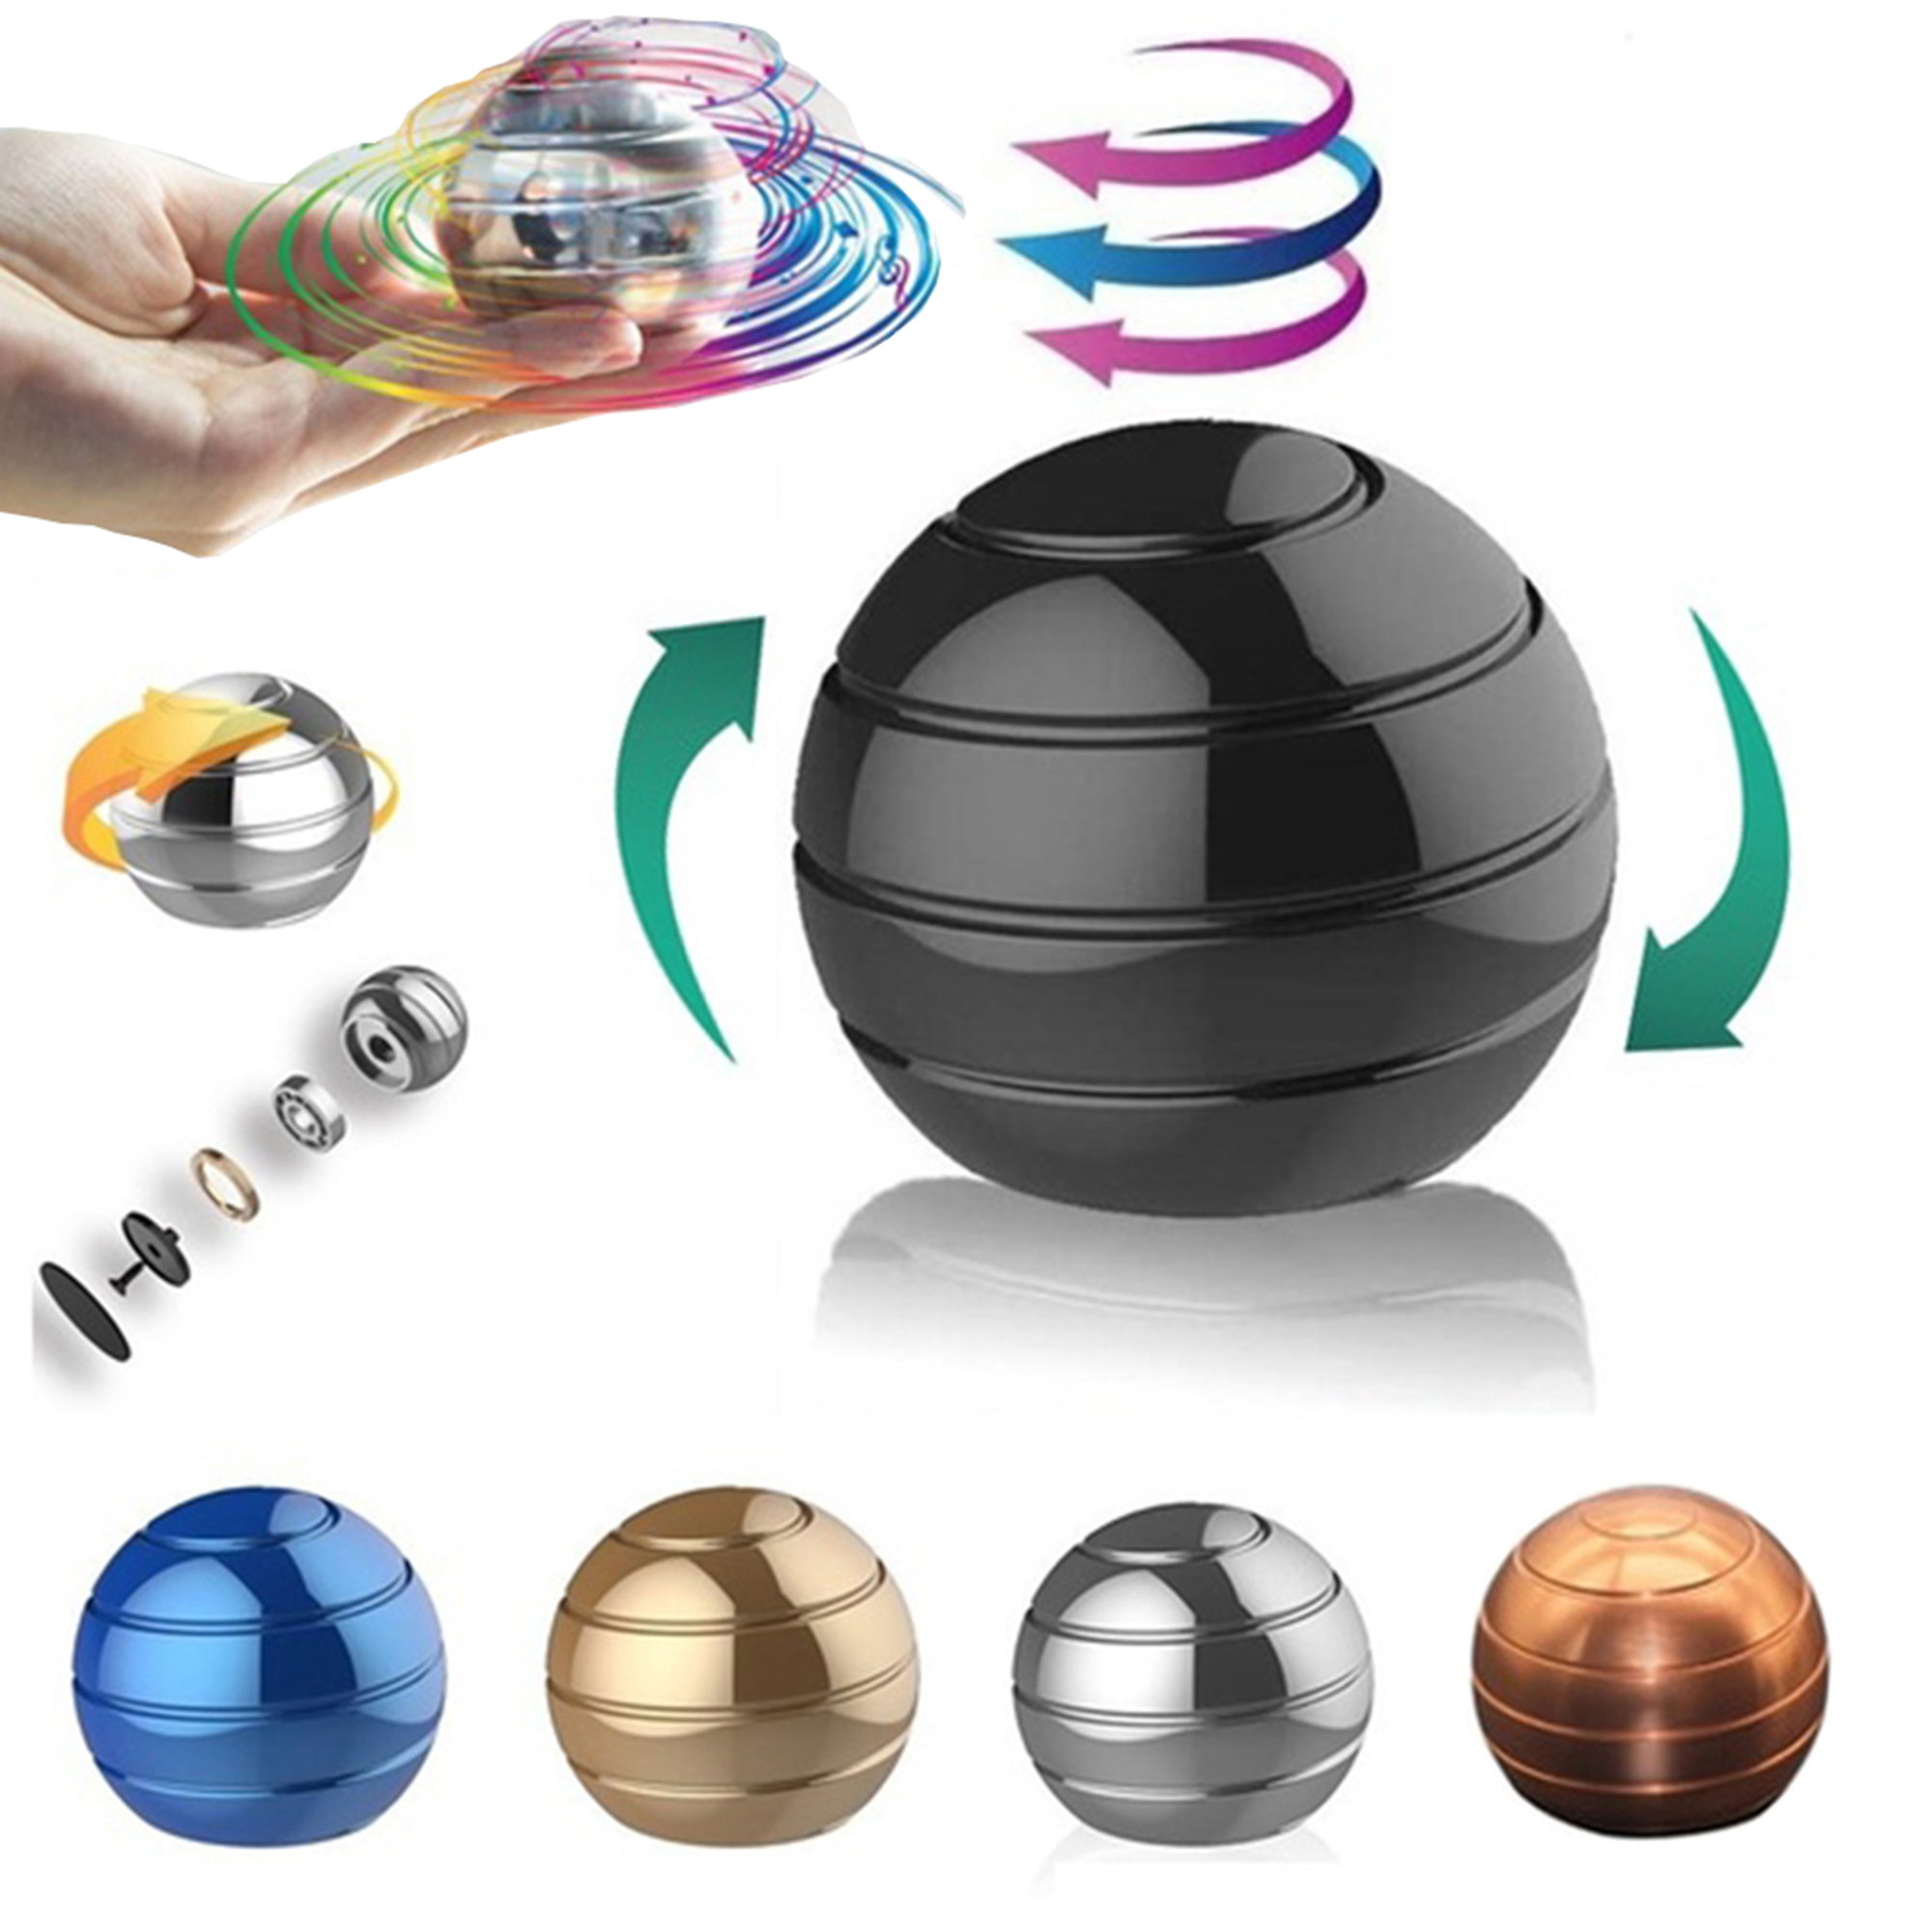 B-THERE Spinner Ball Optical Illusion Fidget Toy for Adults and Sensory Kids...